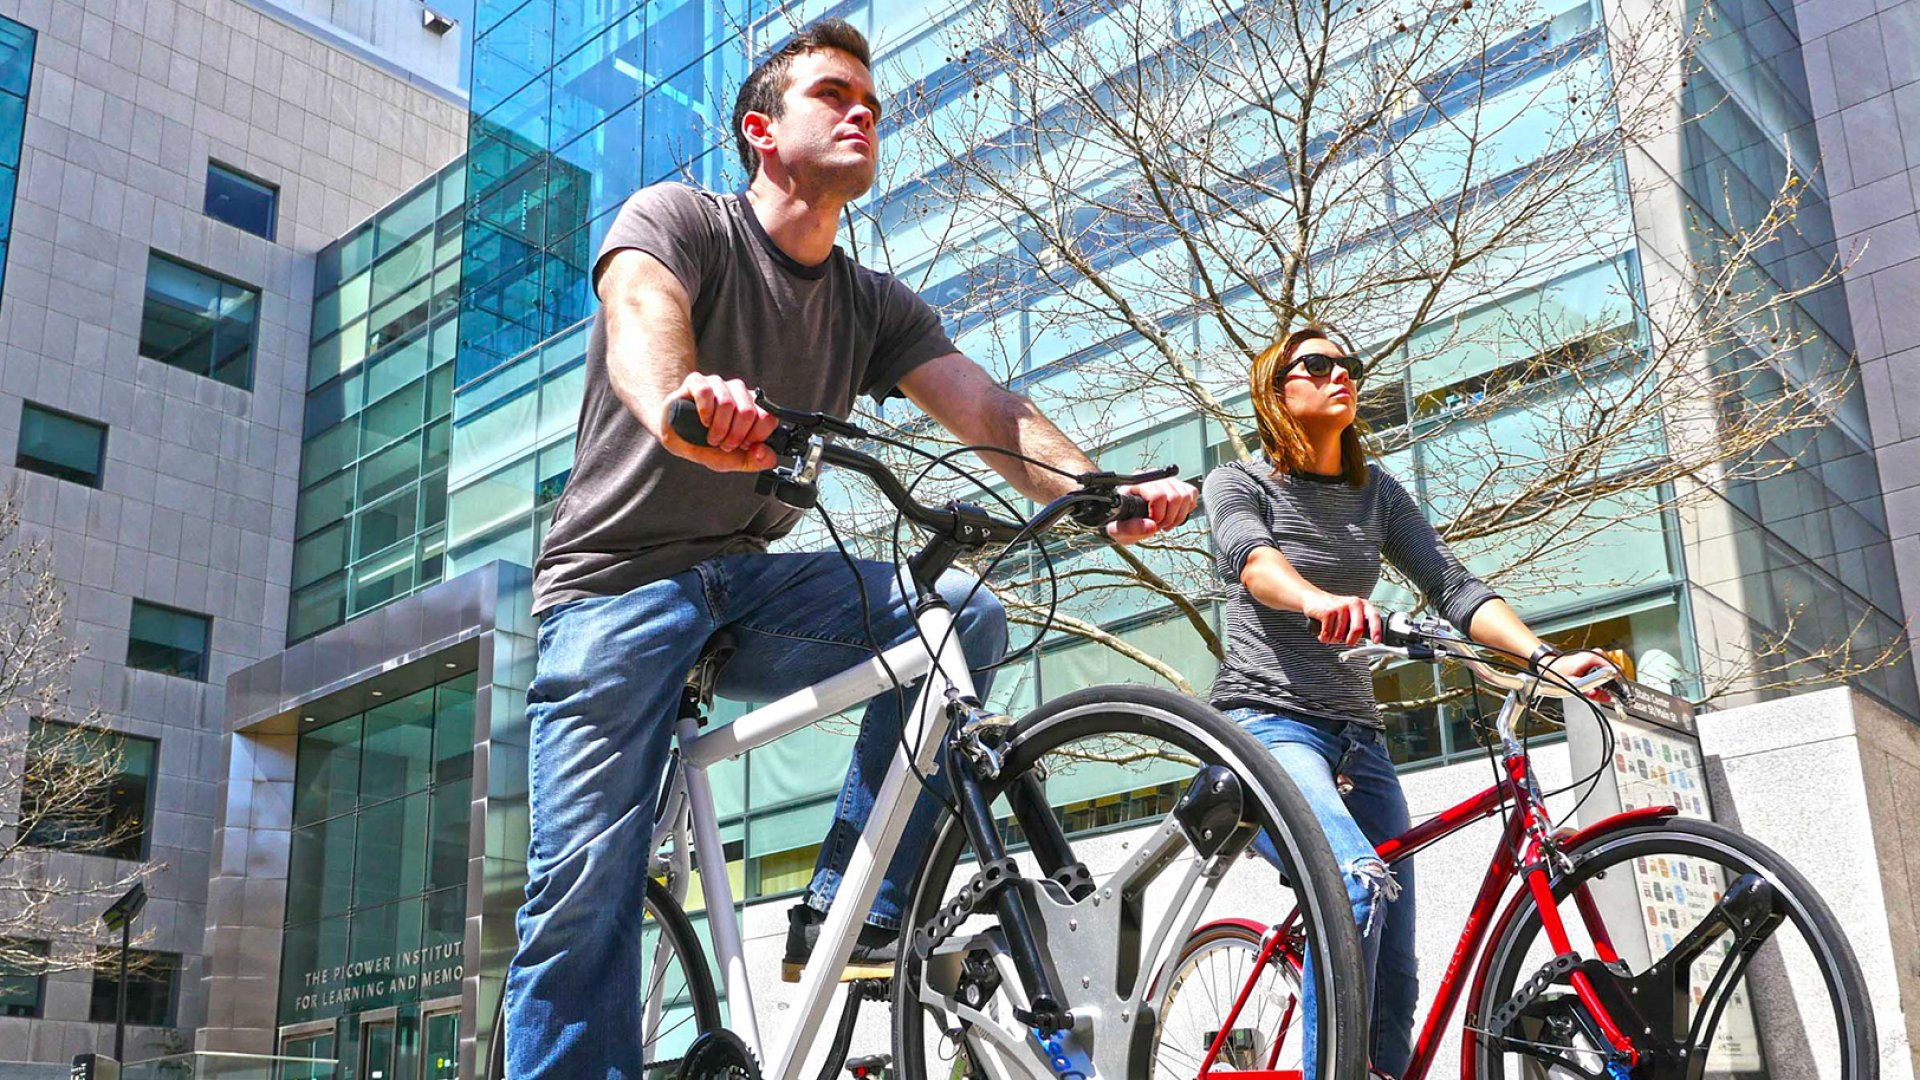 How This Electric Bike Startup Launched One of the Most Successful Kickstarter Campaigns Ever